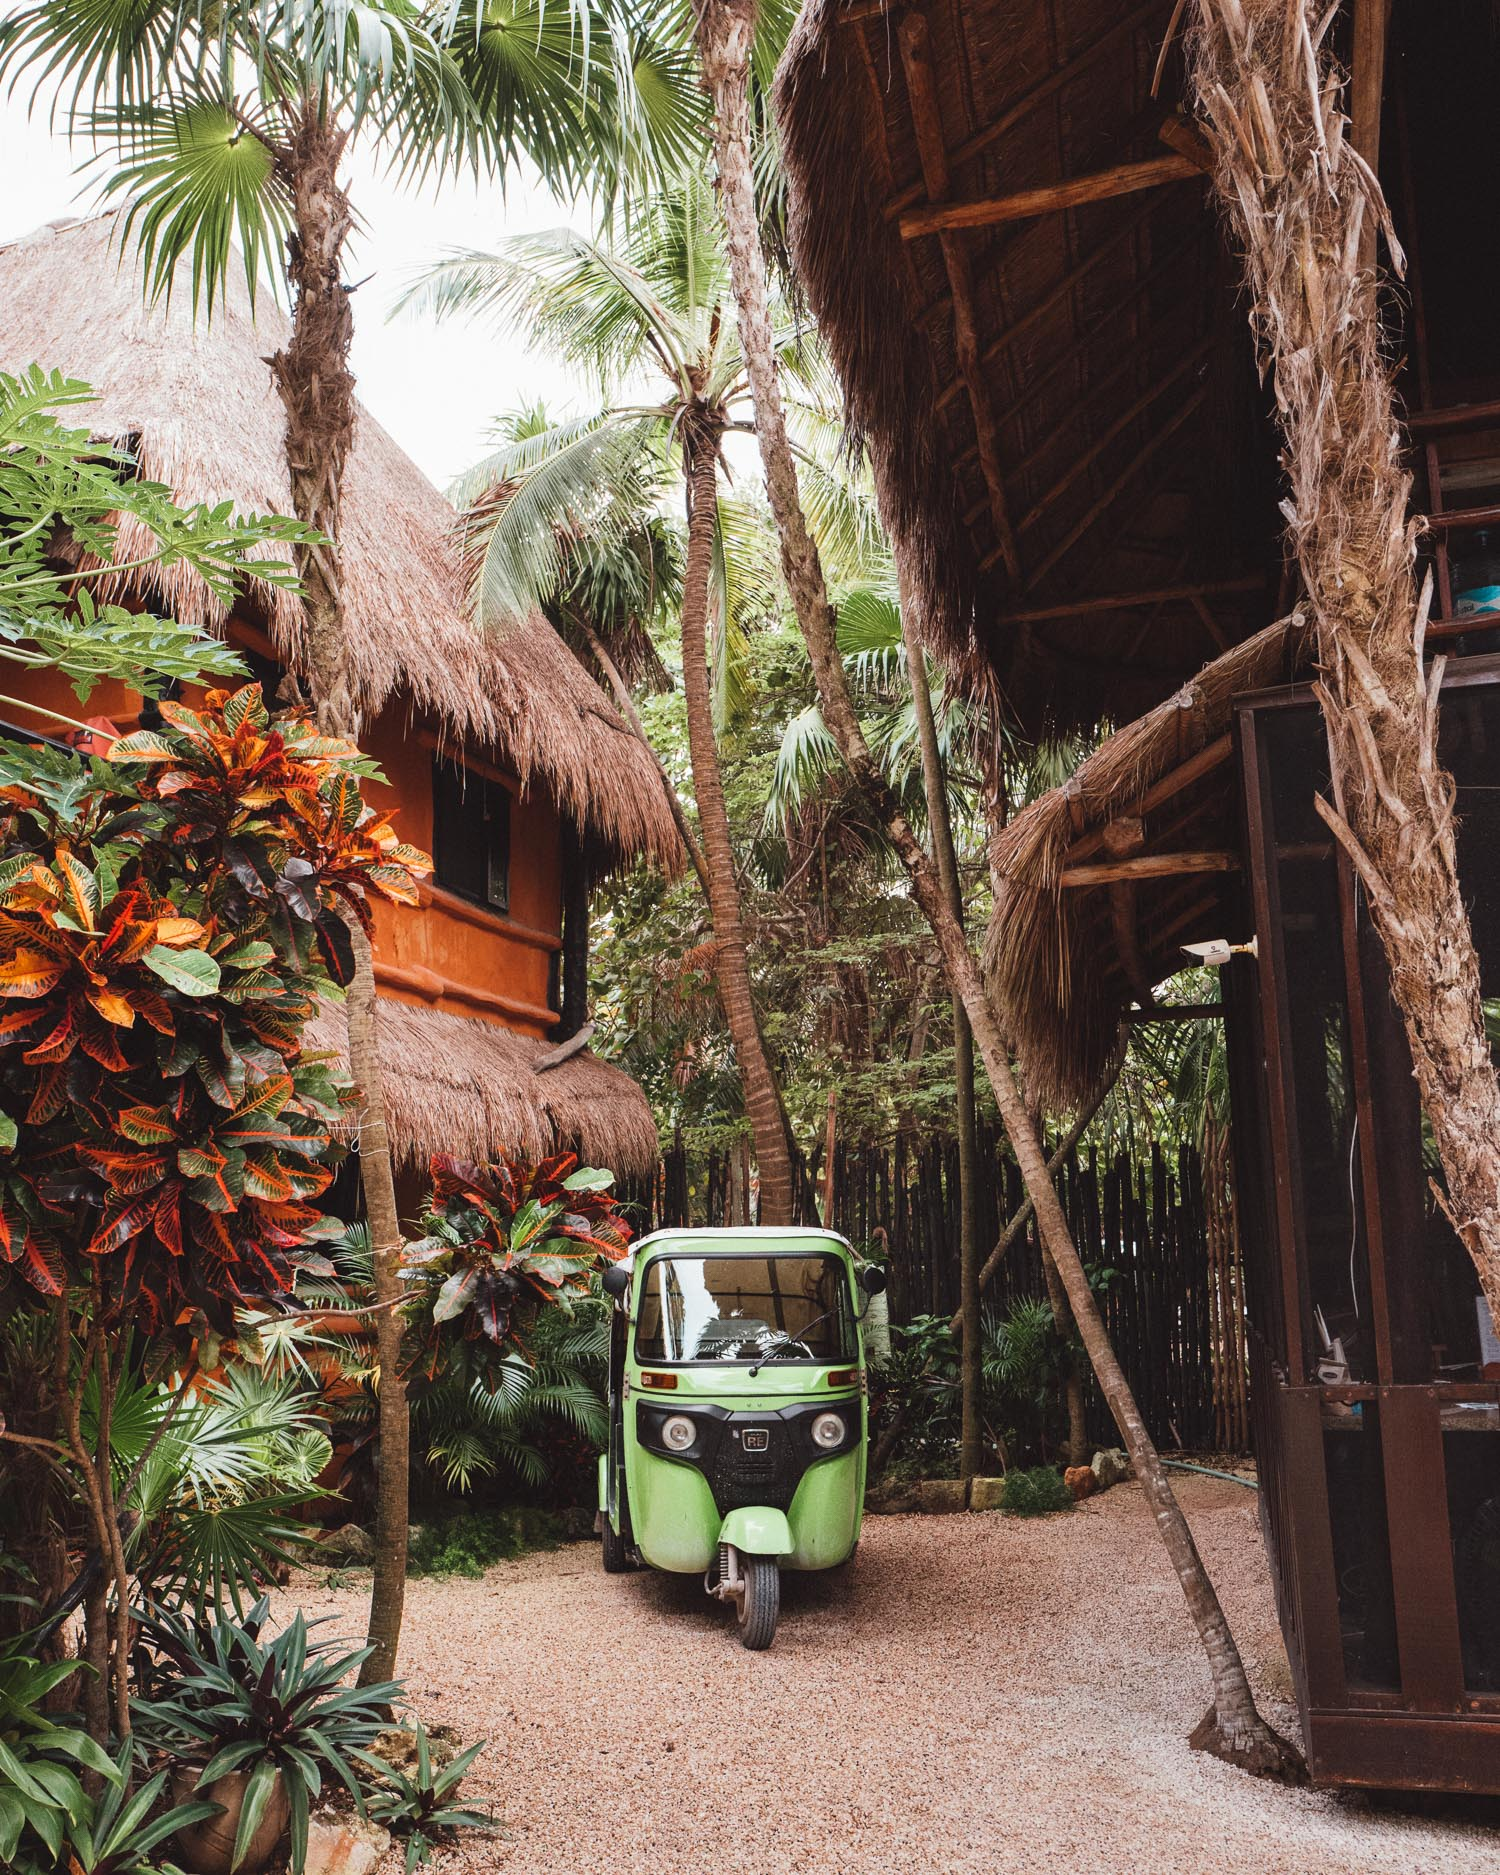 Scooter and palm trees in Tulum, Mexico